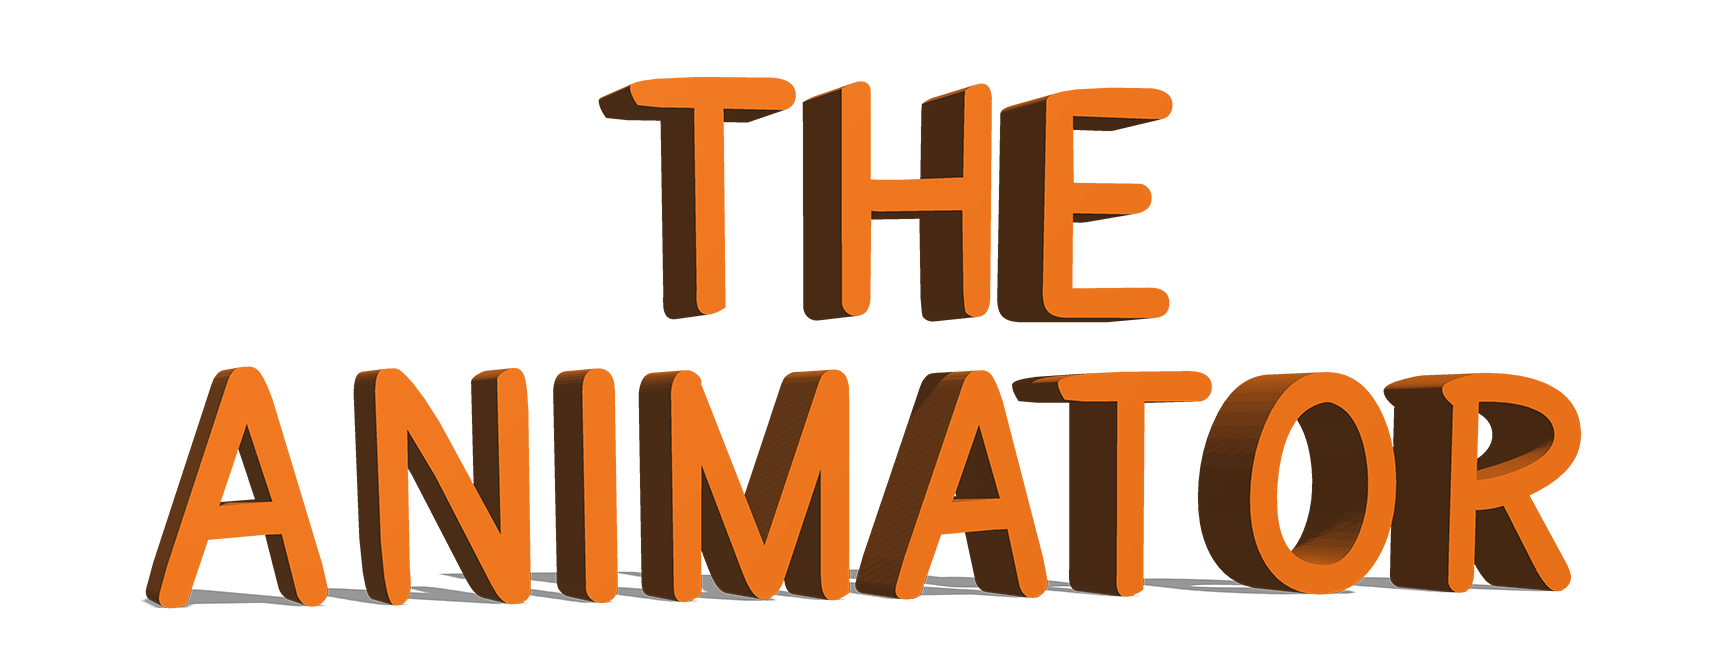 The Animator logo